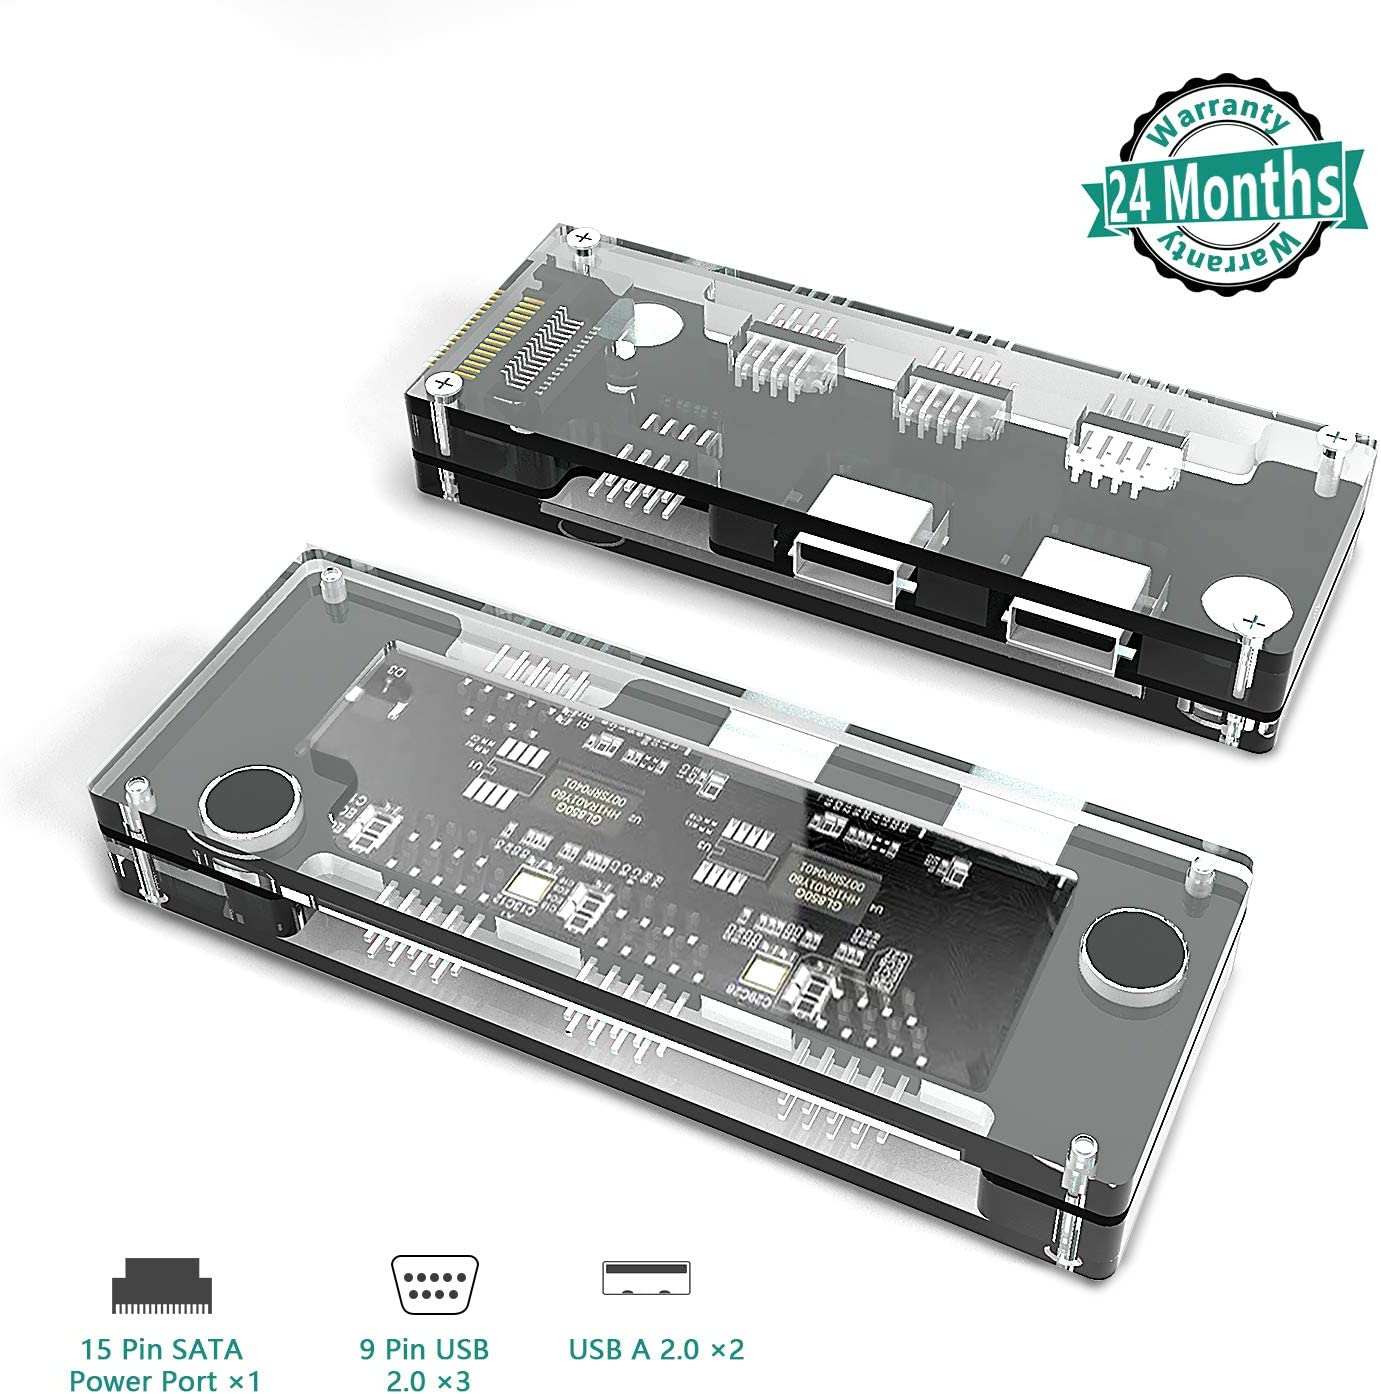 KETAKY Motherboard 9 Pin USB Hub Adapter, 9 Pin USB 2.0 Expand to 3 USB 2.0 (9 Pin) and 2 USB-A 2.0 Ports, with 15 Pin SATA Power Ports, for Desktop Computers, Support Windows Linux MAC OS